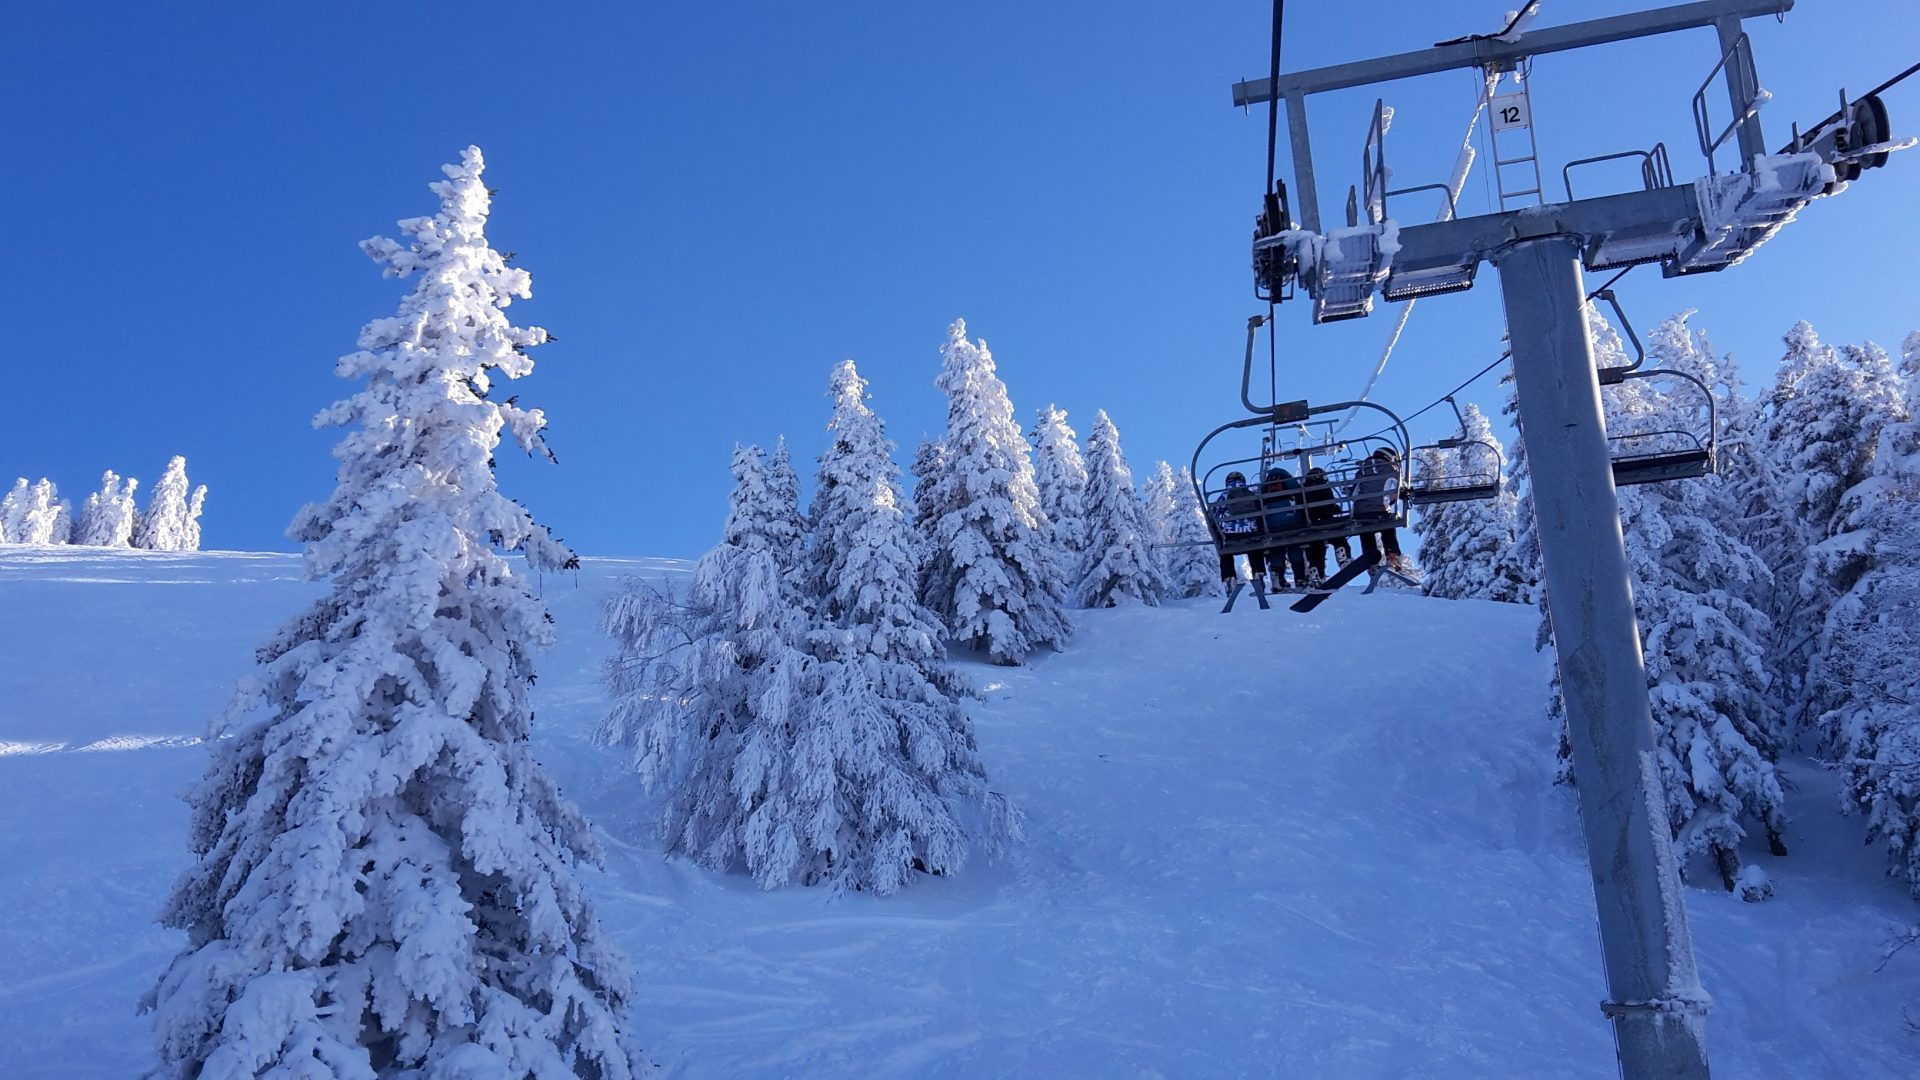 http://live.skiplan.com/moduleweb/2.0/live.php?resort=mourtis&module=ouvertures